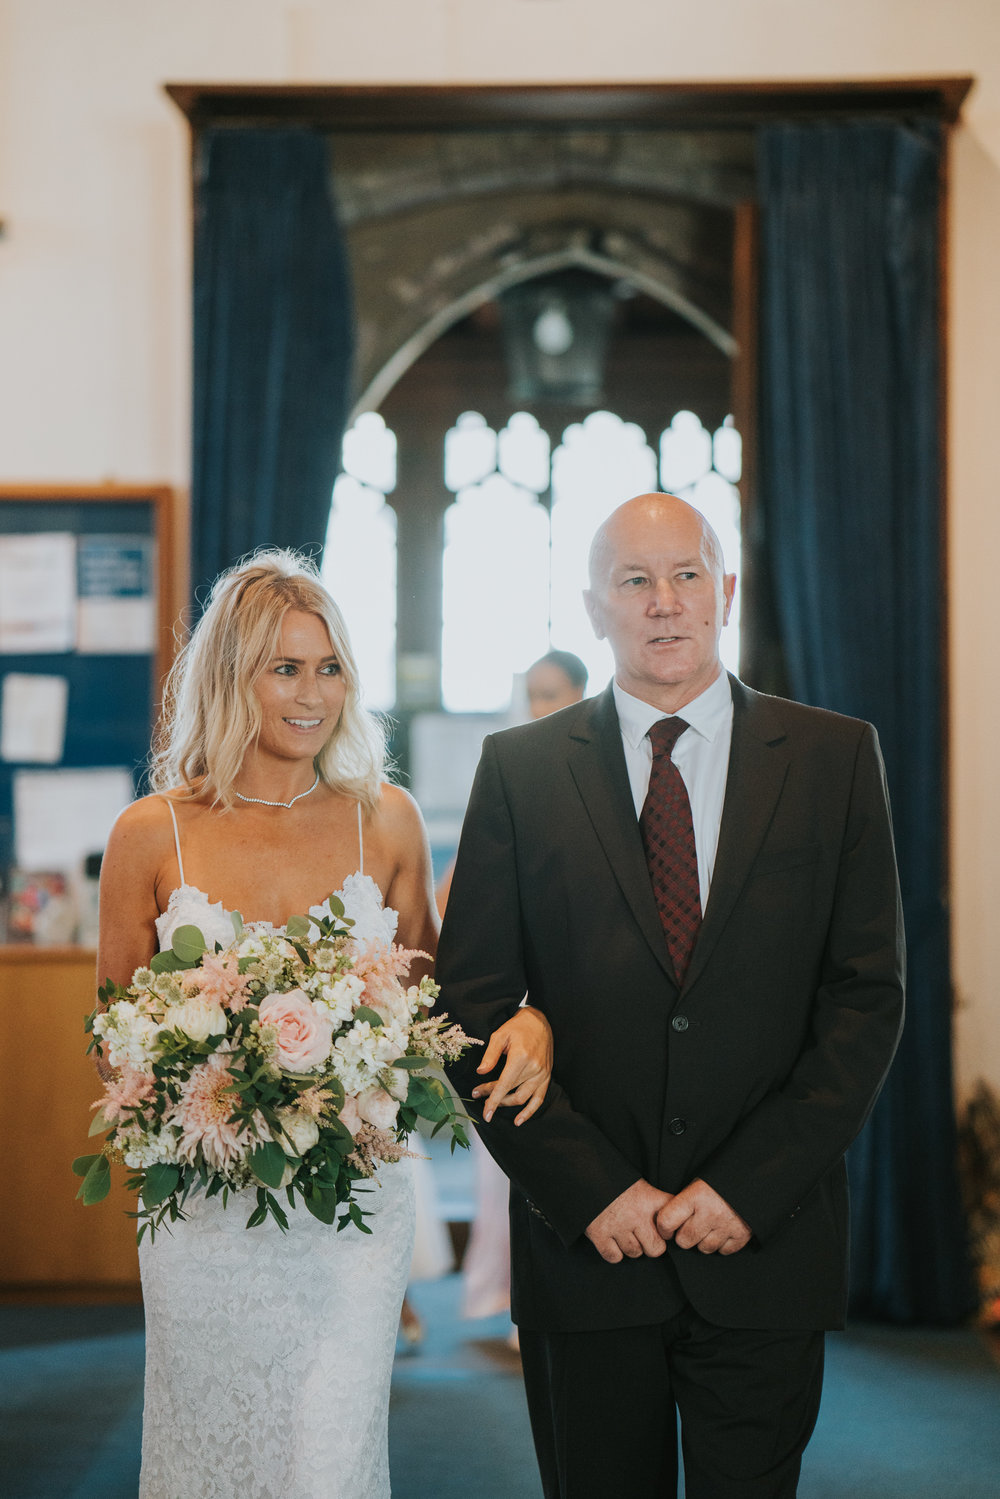 intimate-english-church-wedding-sarah-alex-colchester-essex-grace-elizabeth-colchester-essex-alternative-wedding-lifestyle-photographer-essex-suffolk-norfolk-devon (29 of 92).jpg